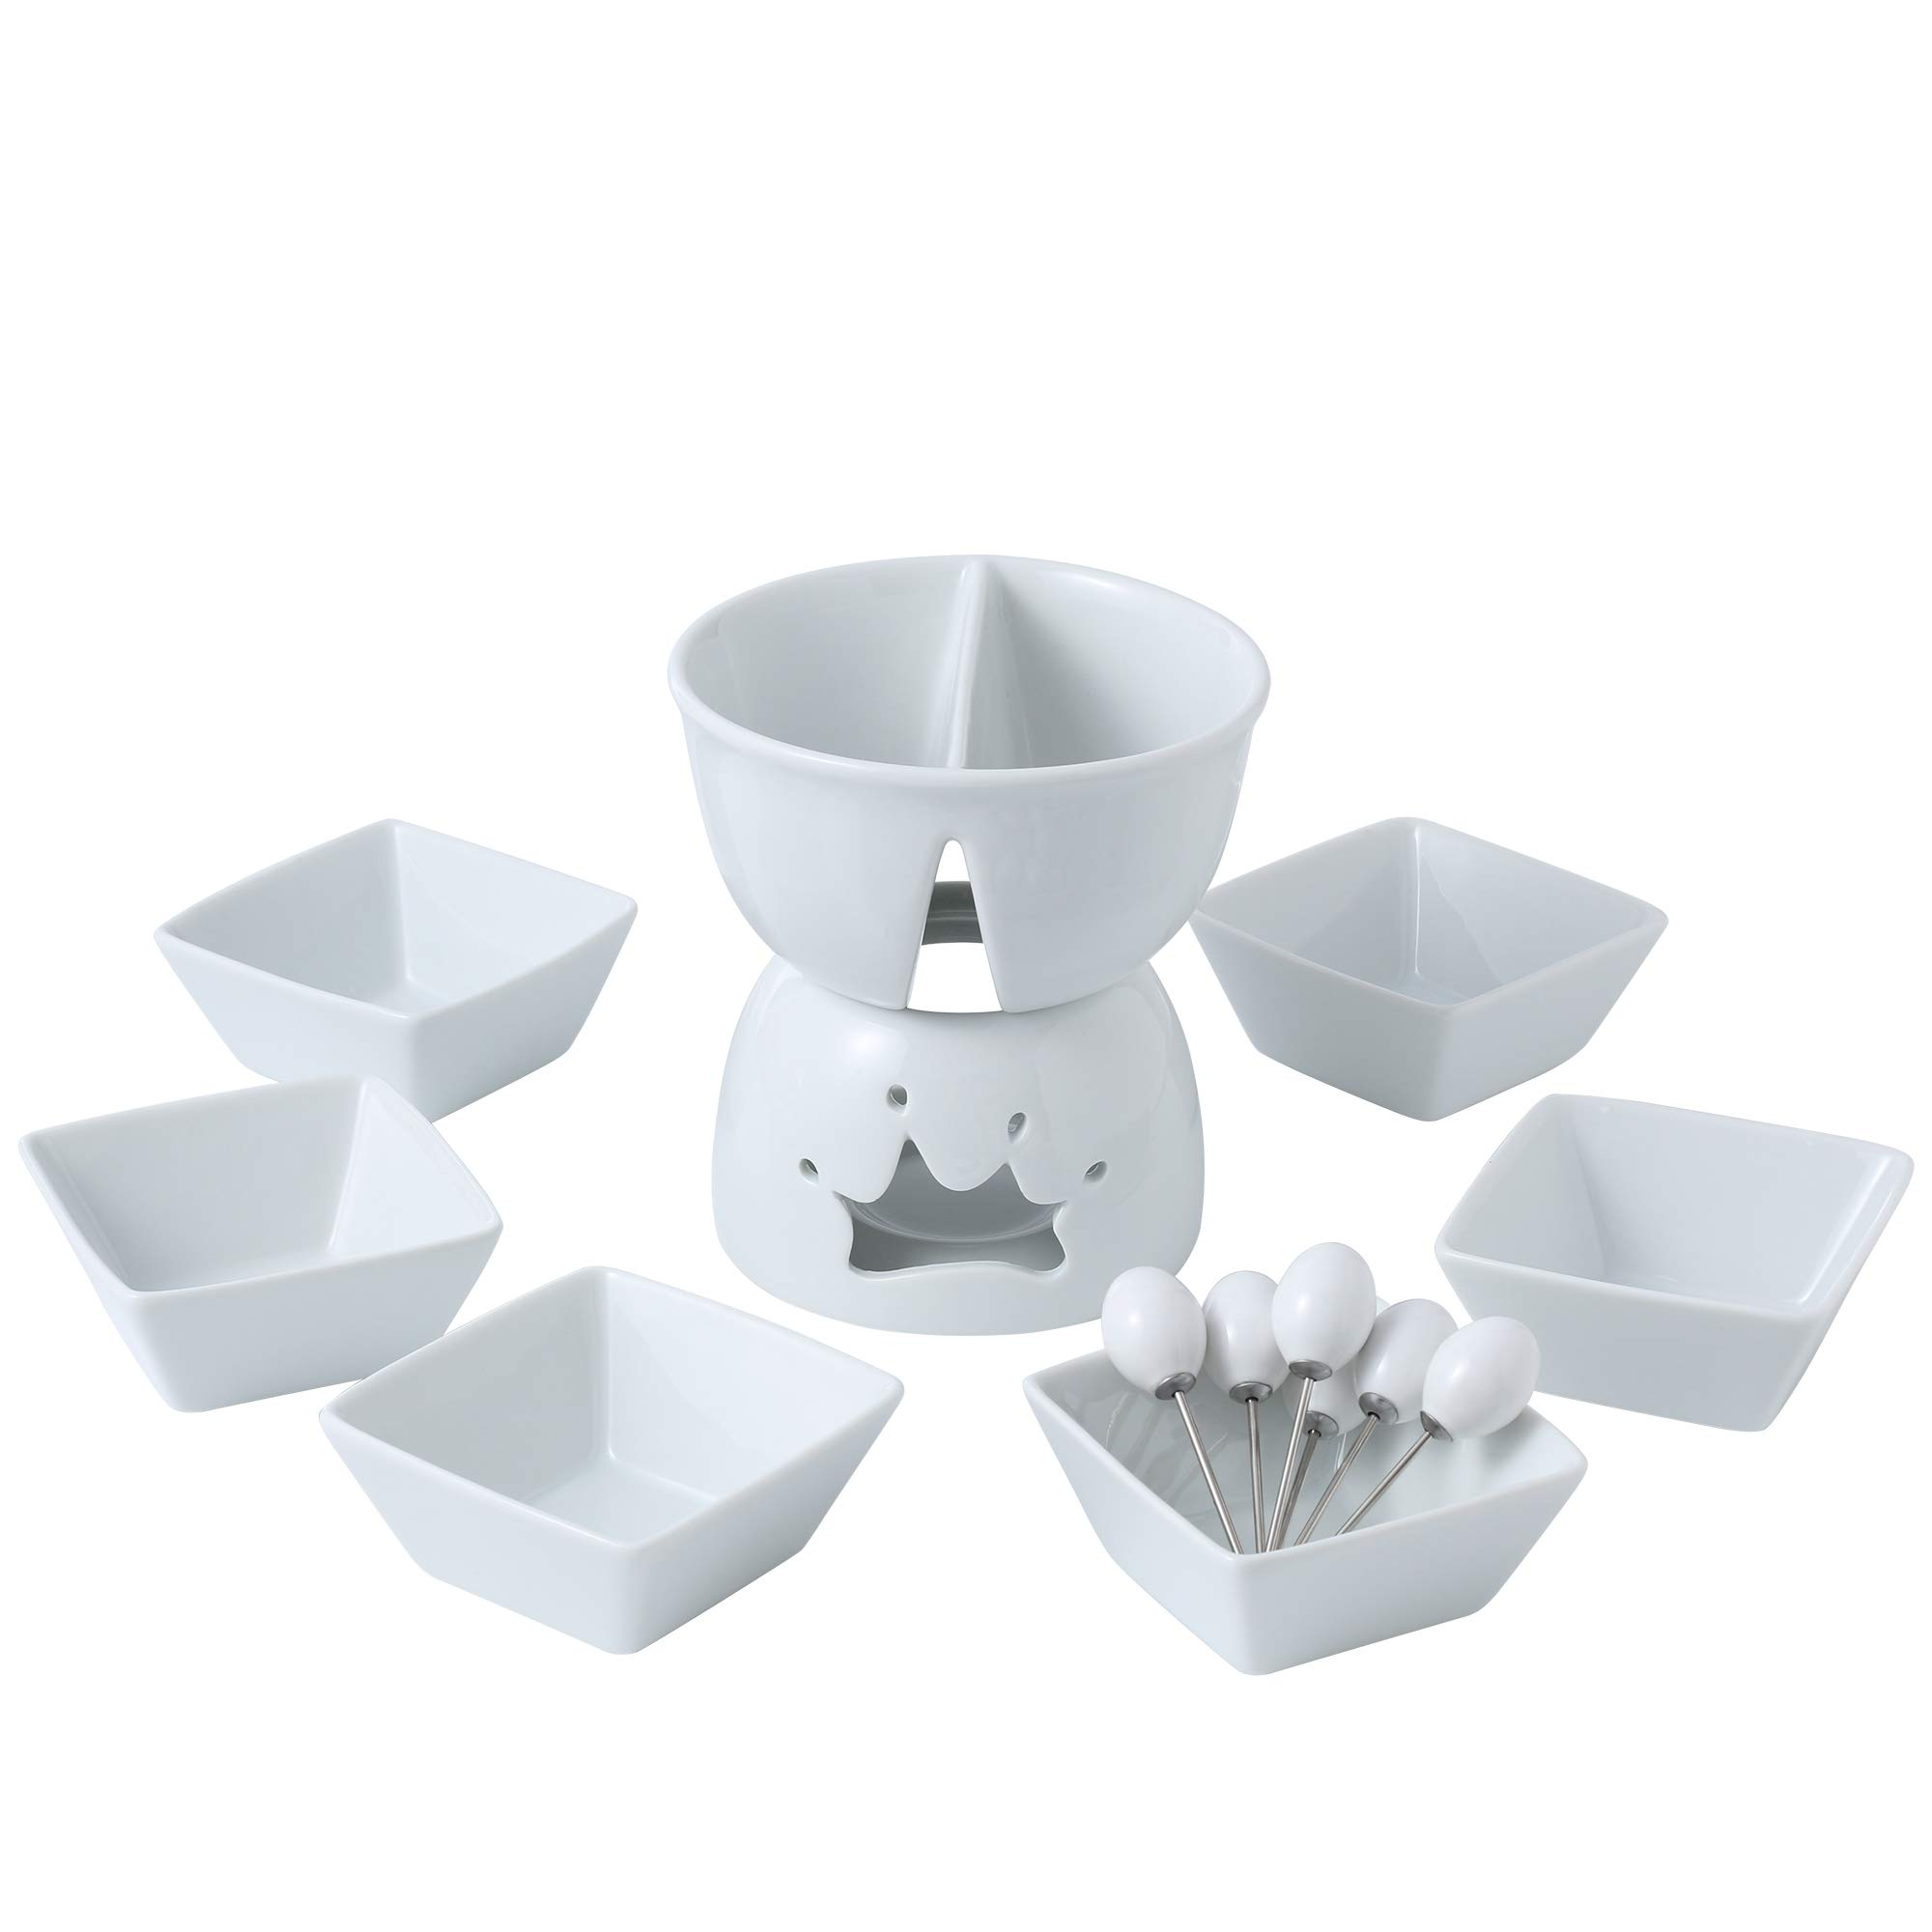 Malacasa Series Favor Two Compartments Ivory White Ceramic Porcelain Tealight Candle Cheese Butter Chocolate Fondue Set with 6 Dipping Bowls 6 Forks, 10.8 x 8.3 x 6.8 inches,